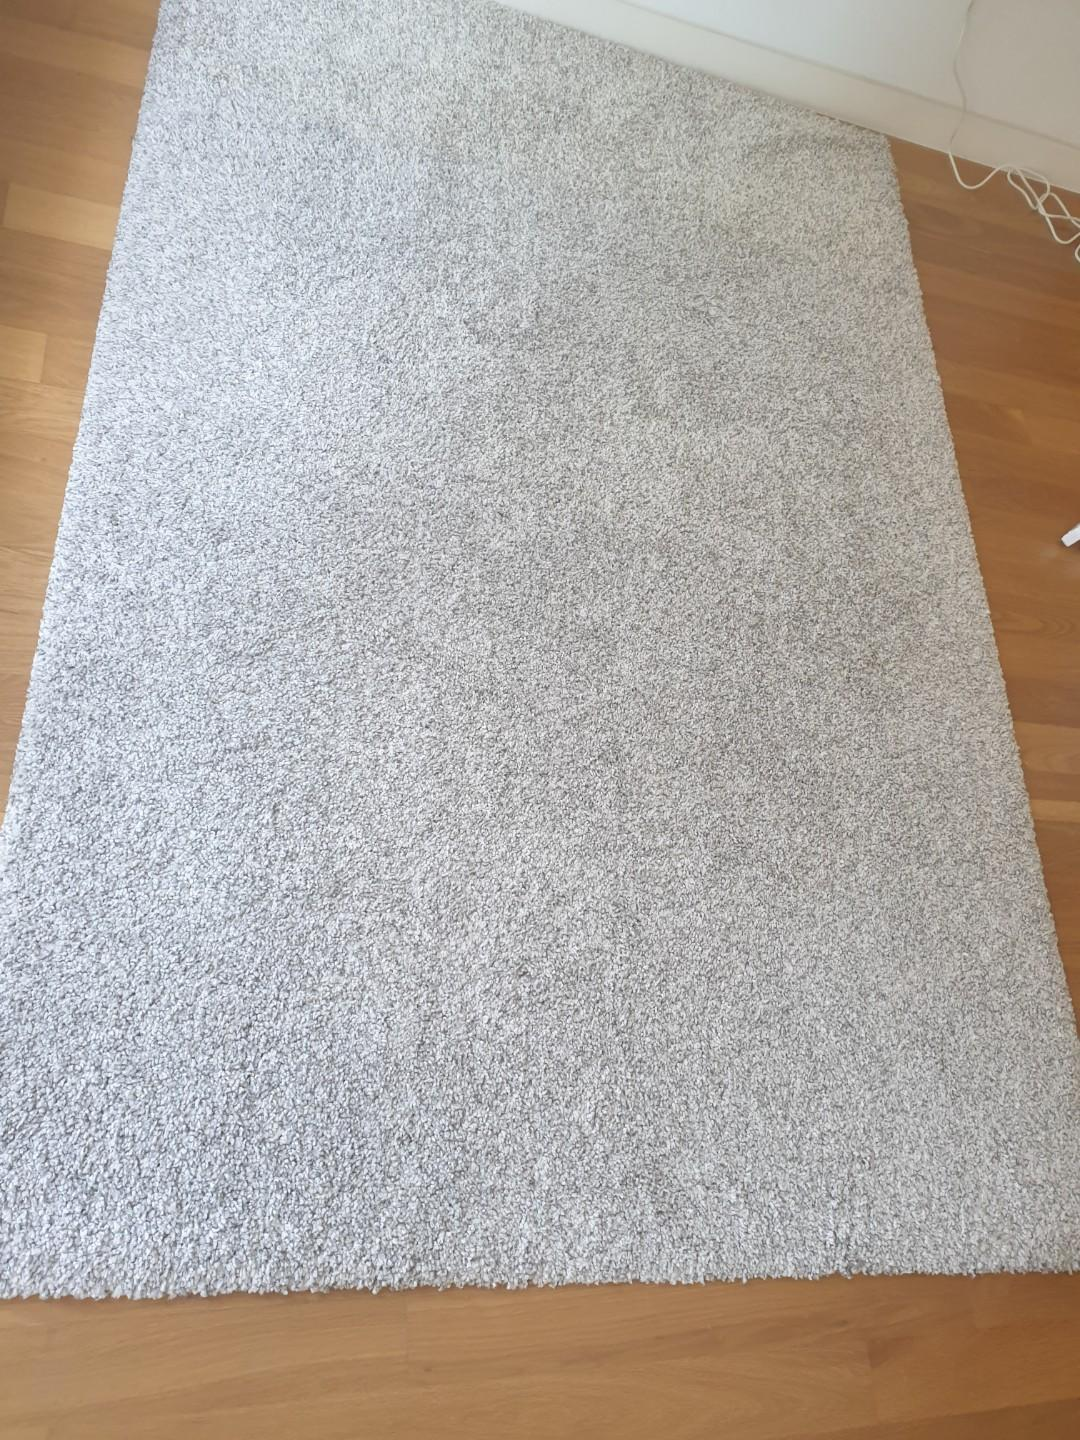 Ikea Rug Furniture Others On Carousell